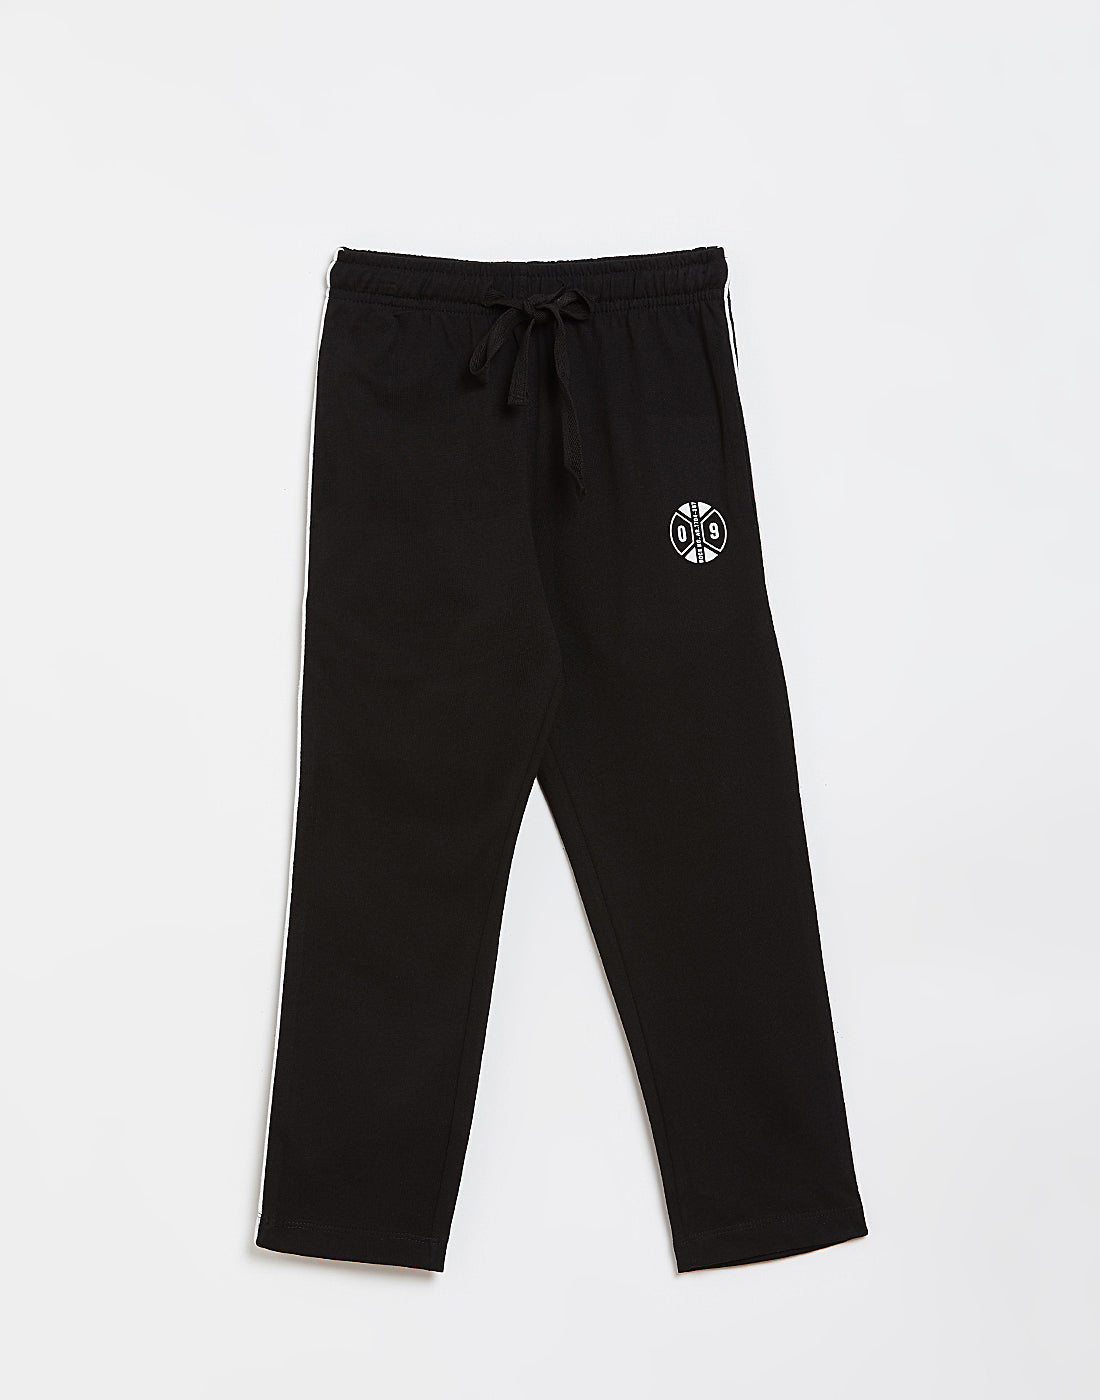 Octave Boys Black Printed Trackpants